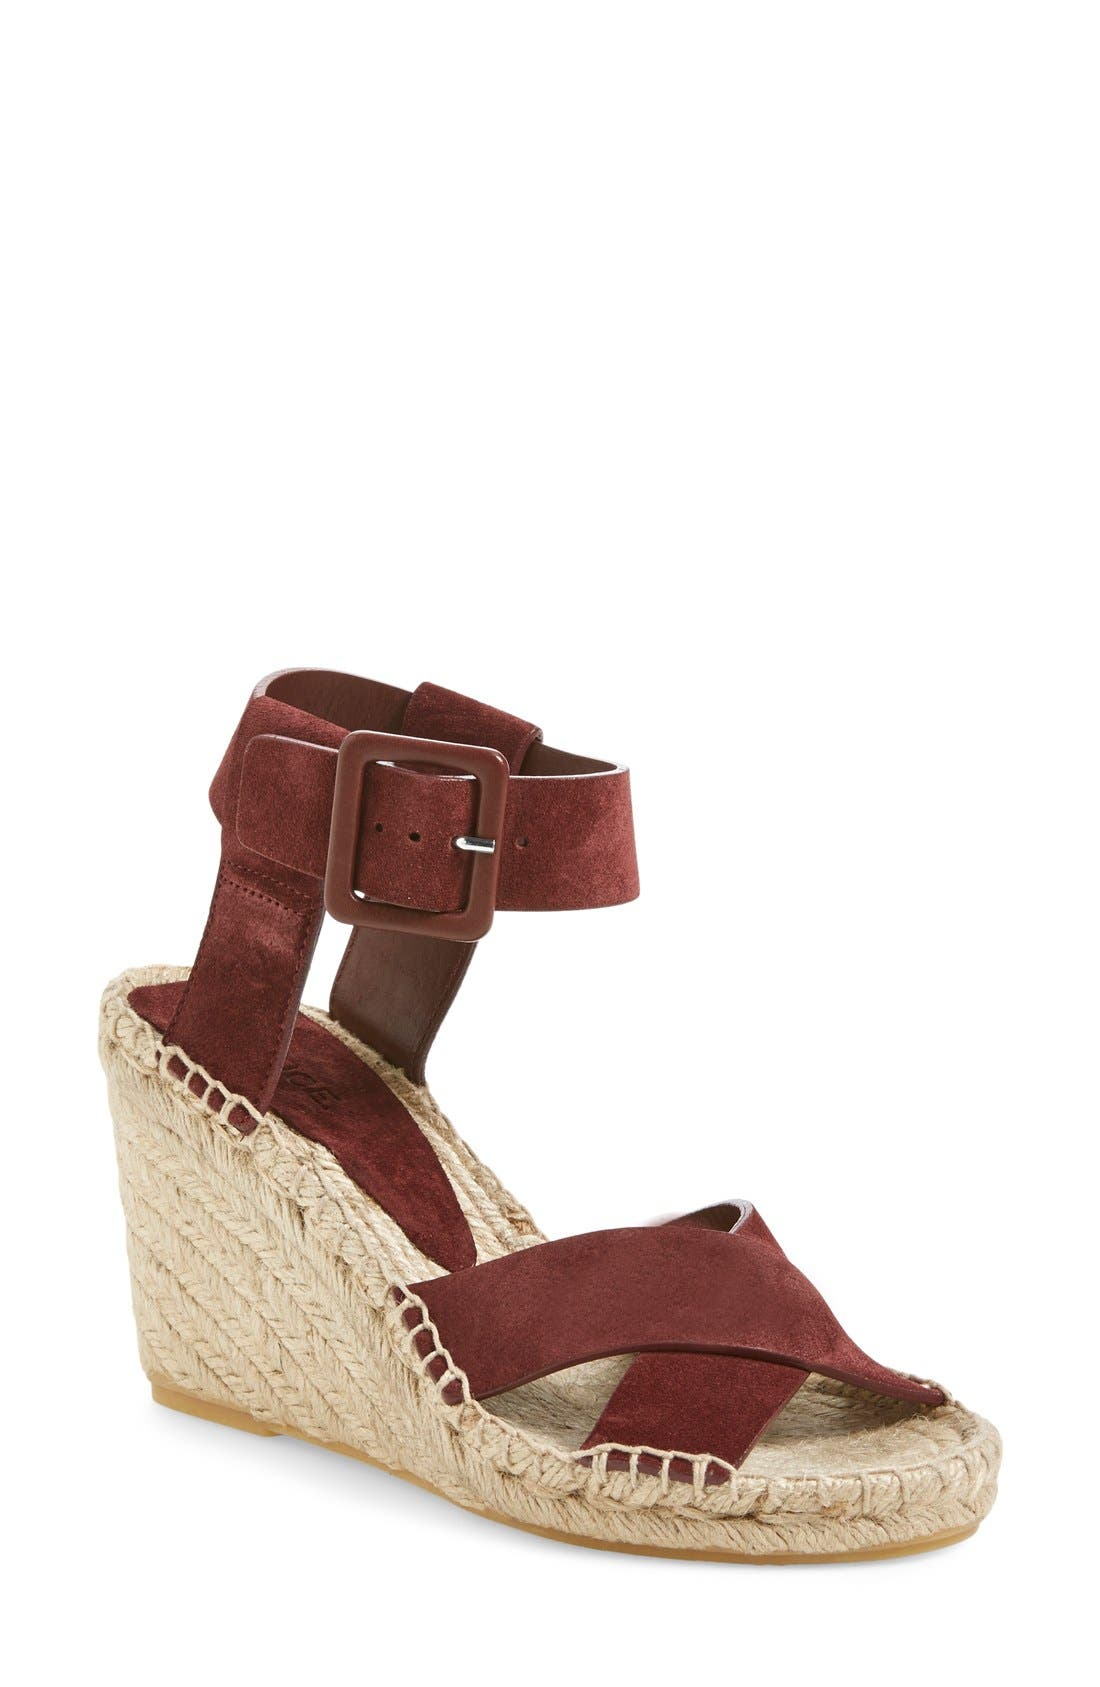 'Stefania' Espadrille Wedge Sandal, Main, color, 200